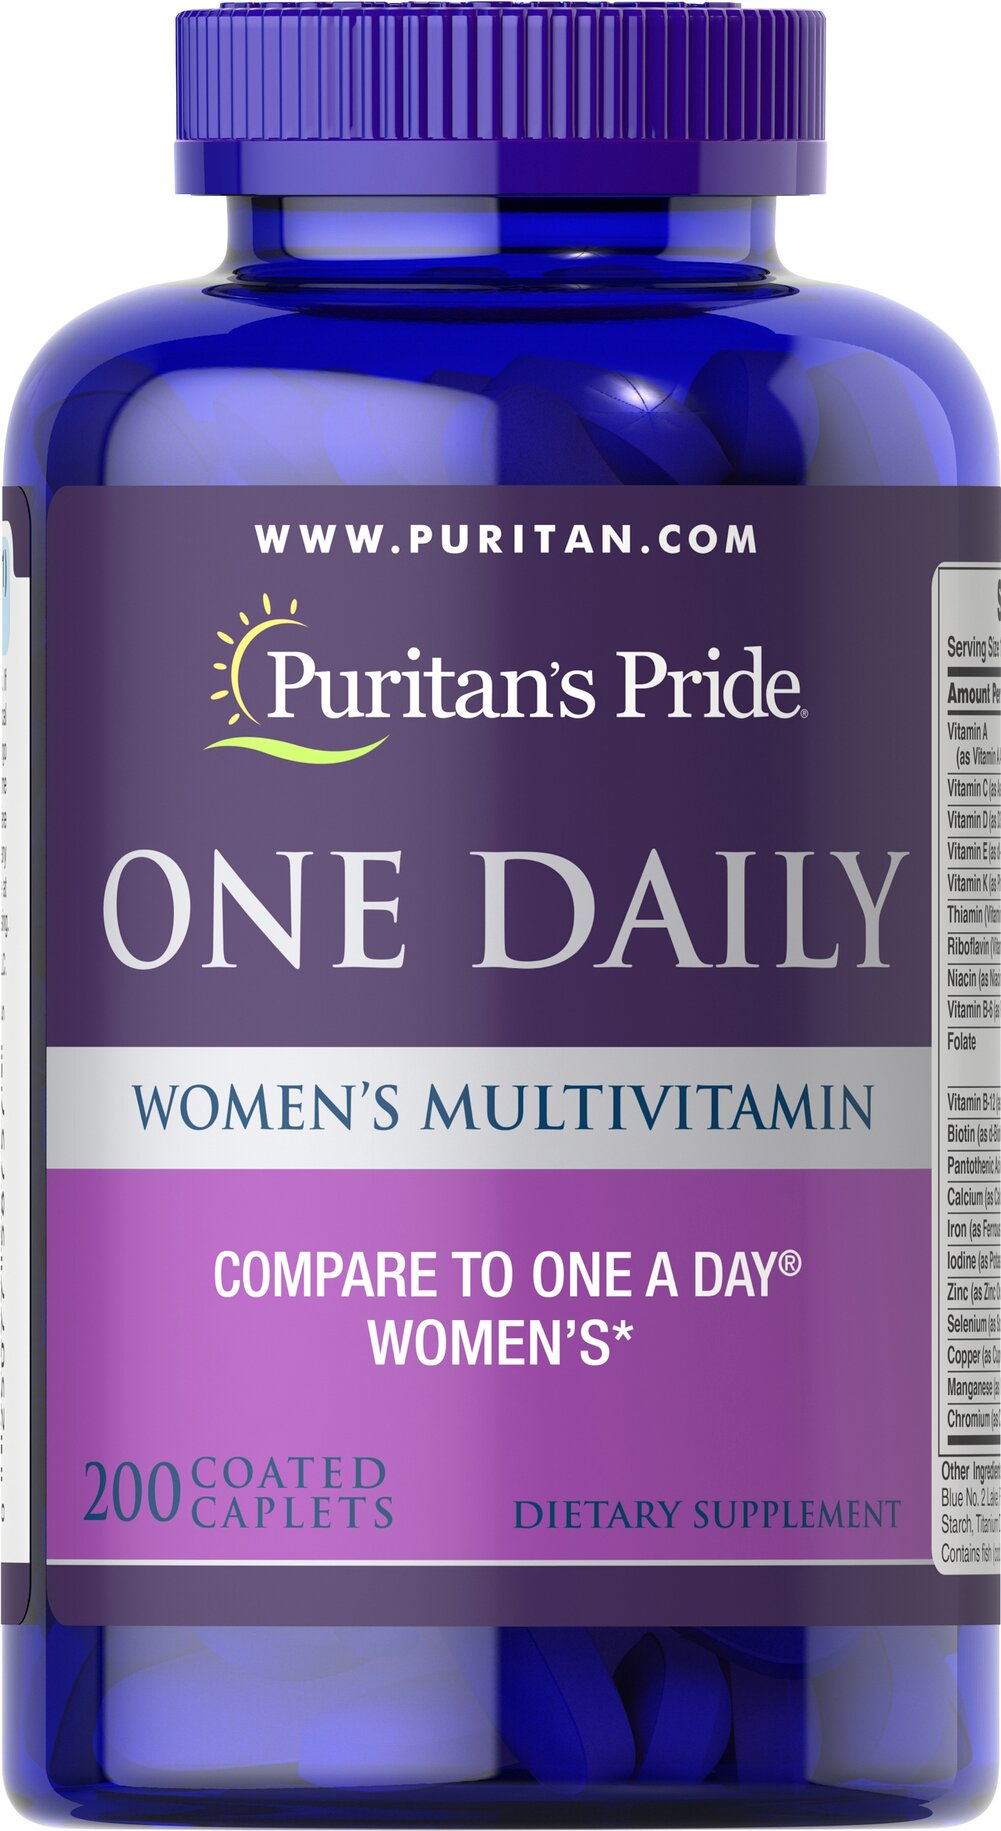 Women's One Daily Multivitamins <p><b>A Convenient Vitamin for the Woman on the Go!</b></p>  <p>Once-daily formula provides a valuable array of vitamins and minerals**</p> <p>Includes 1000 IU of Vitamin D to promote bone and immune system health**</p> <p>Provides 100% of the Daily Value of 5 different B-Vitamins to aid with energy metabolism and nervous system health**</p> 200 Caplets  $22.99